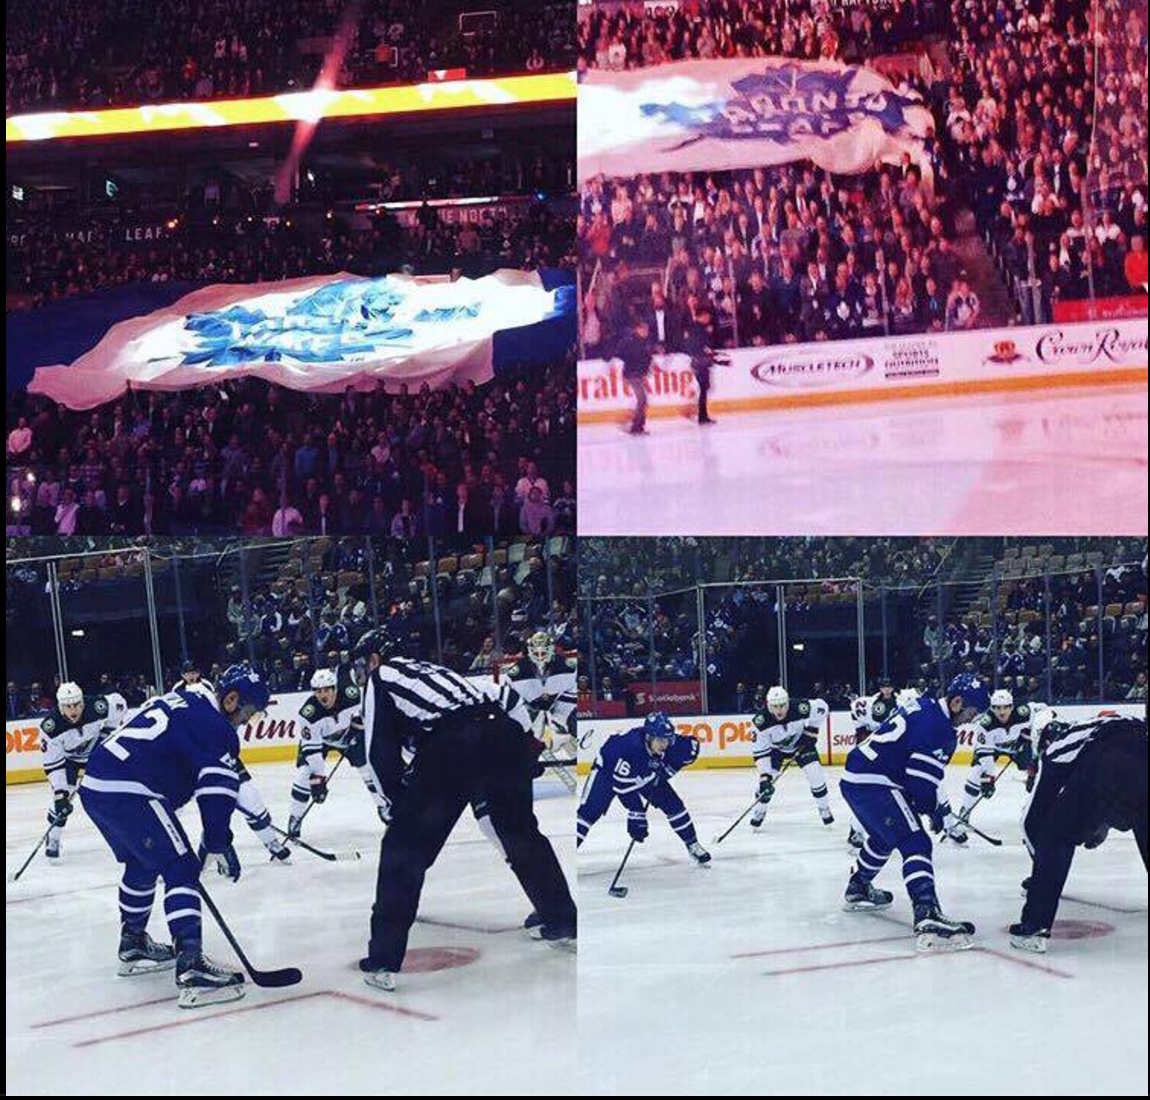 Amazing Night at Leafs Game